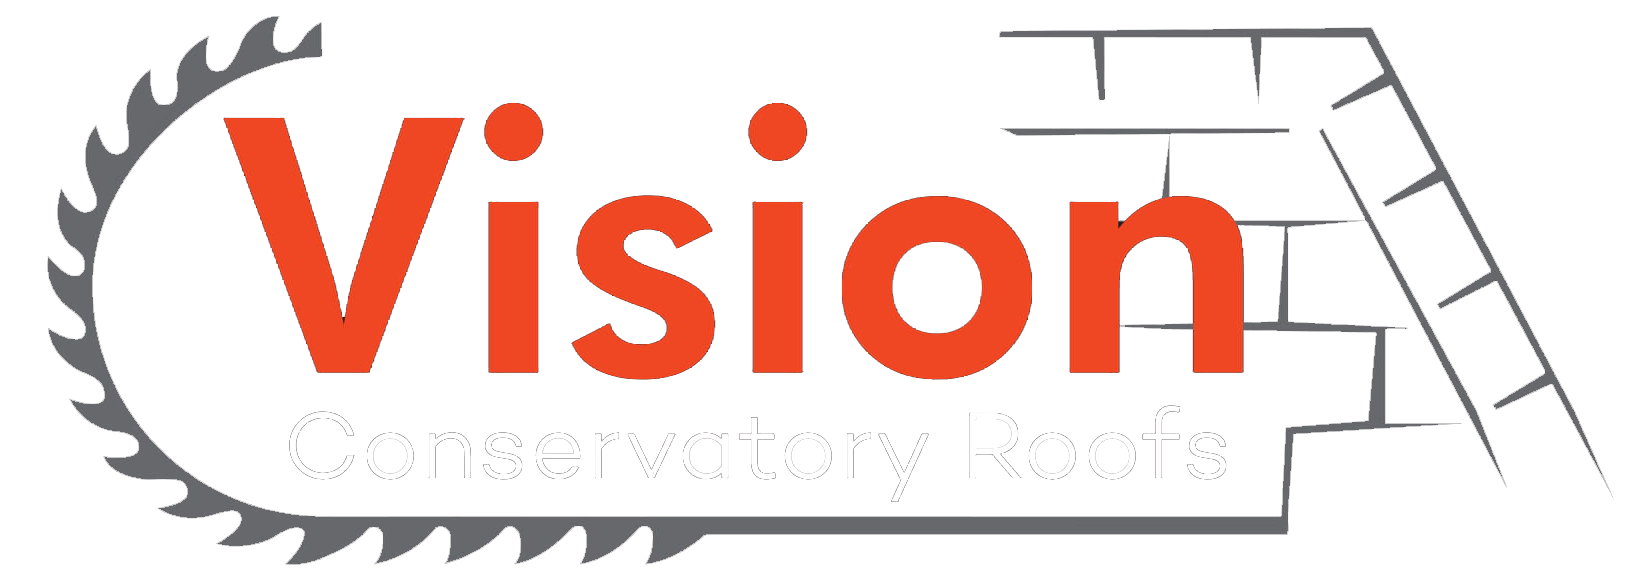 Vision Conservatory Roof Logo